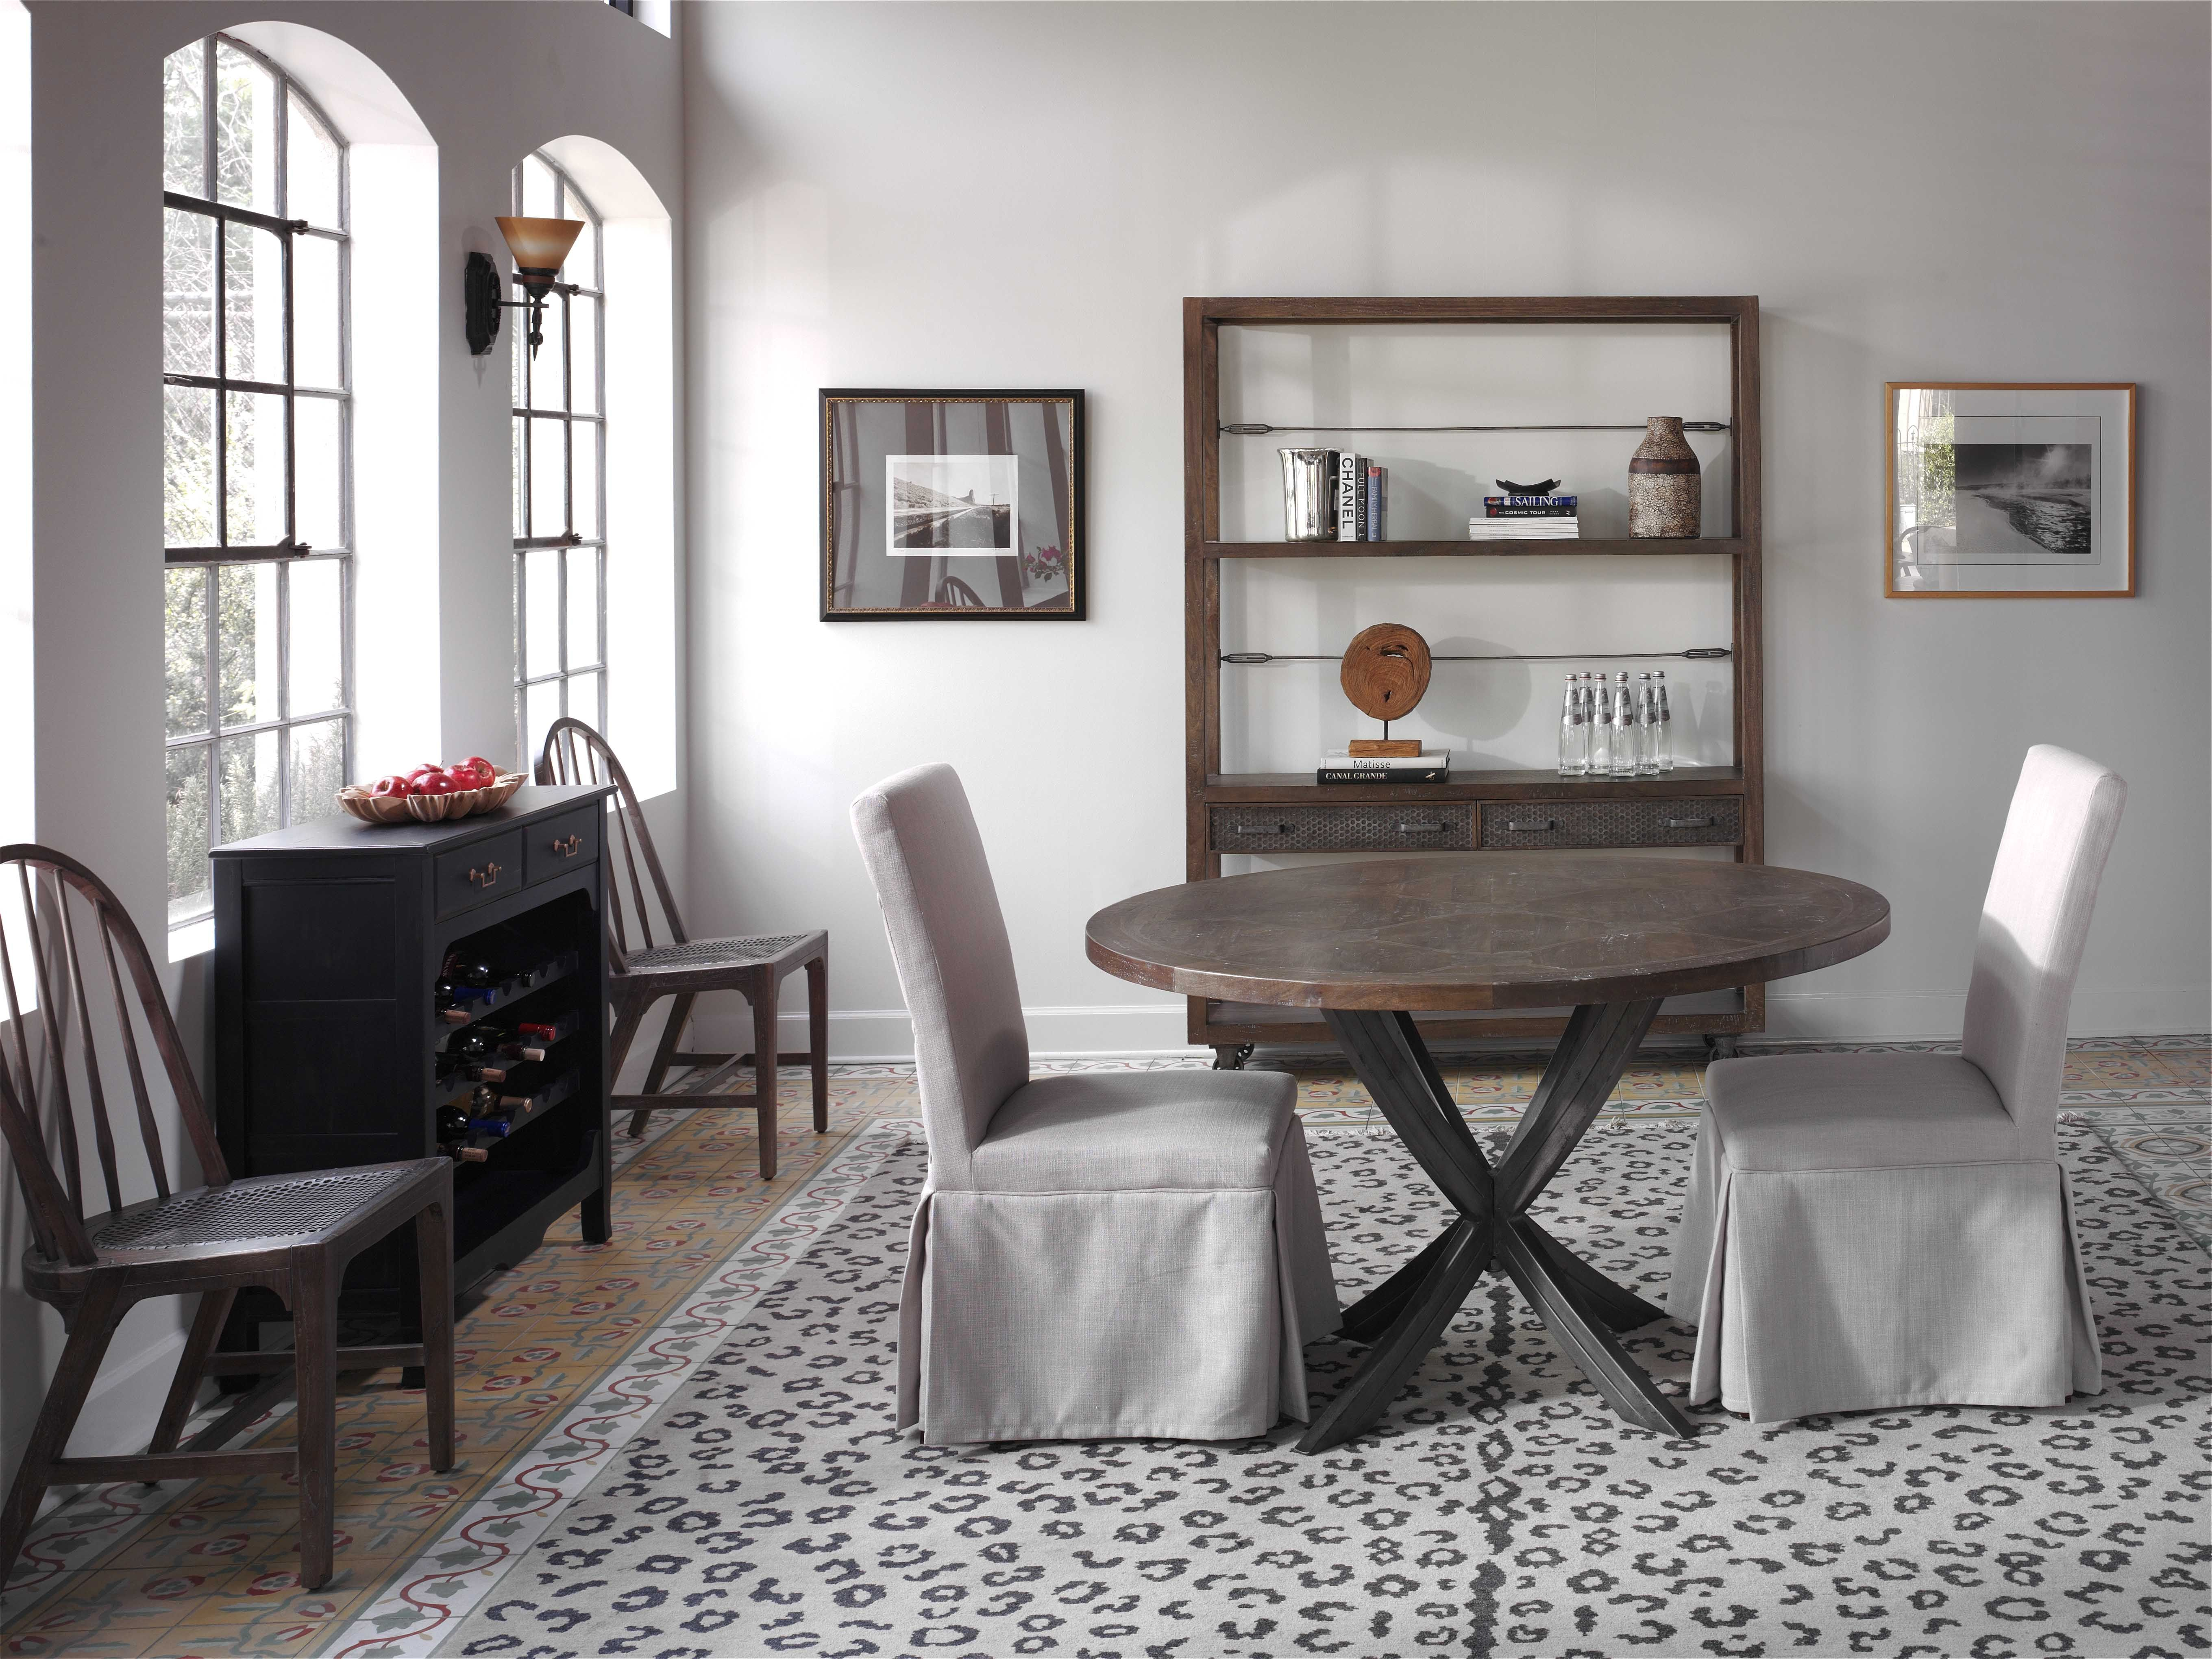 edgy furniture. Edgy Furniture. Cool, Minimal, Edgy. Industrial And Rustic Elements Are Refined With Furniture O